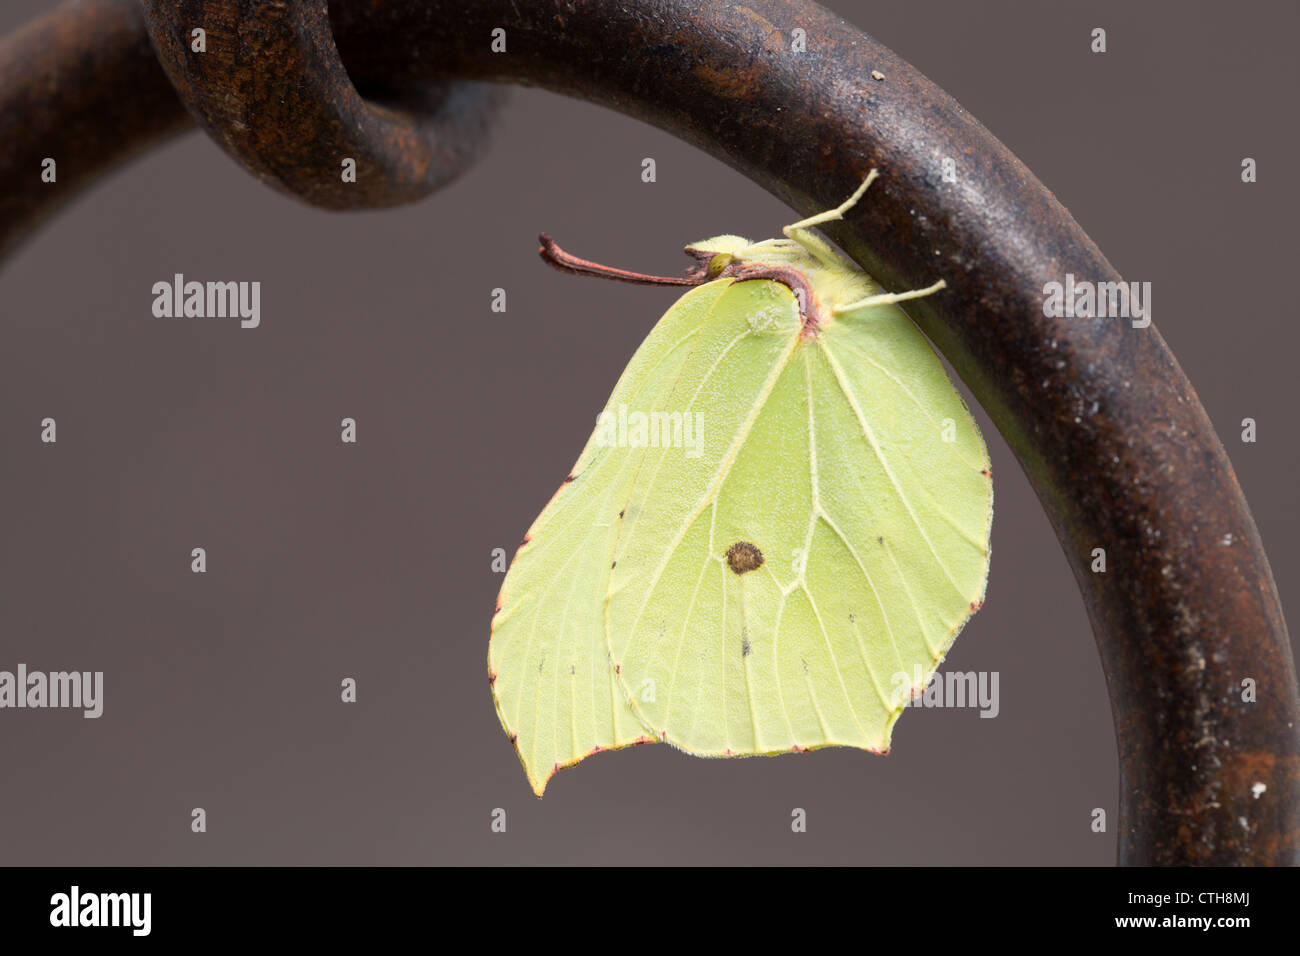 Metal Butterfly Stock Photos & Metal Butterfly Stock Images - Alamy